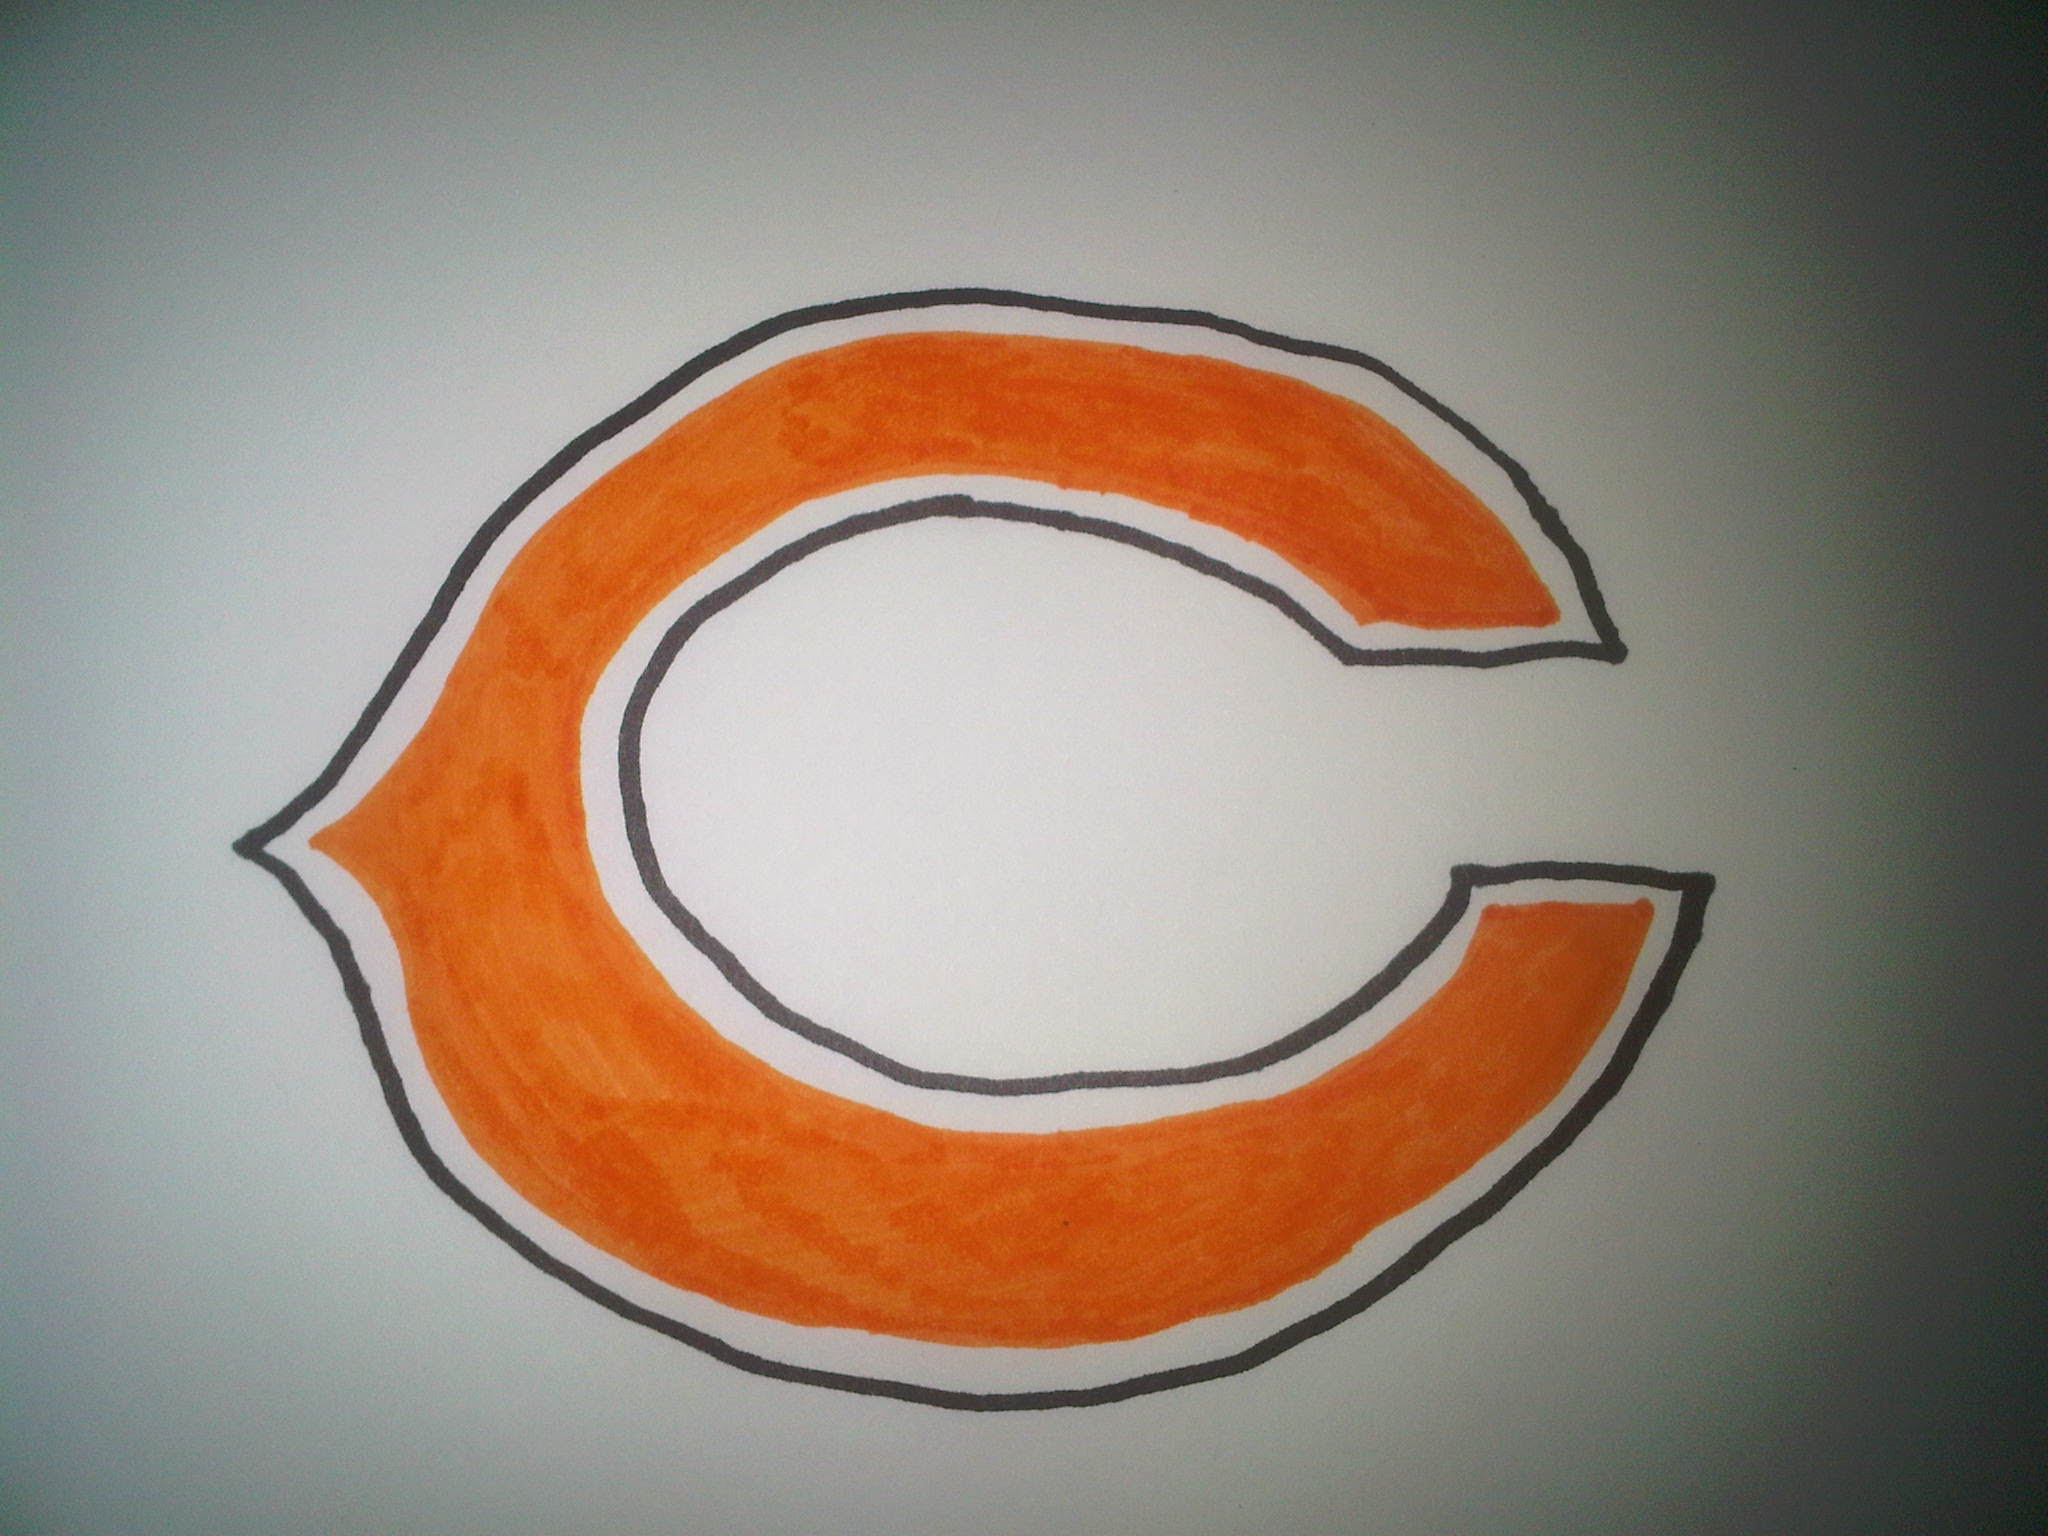 2048x1536 How To Draw The Chicago Bears Logo